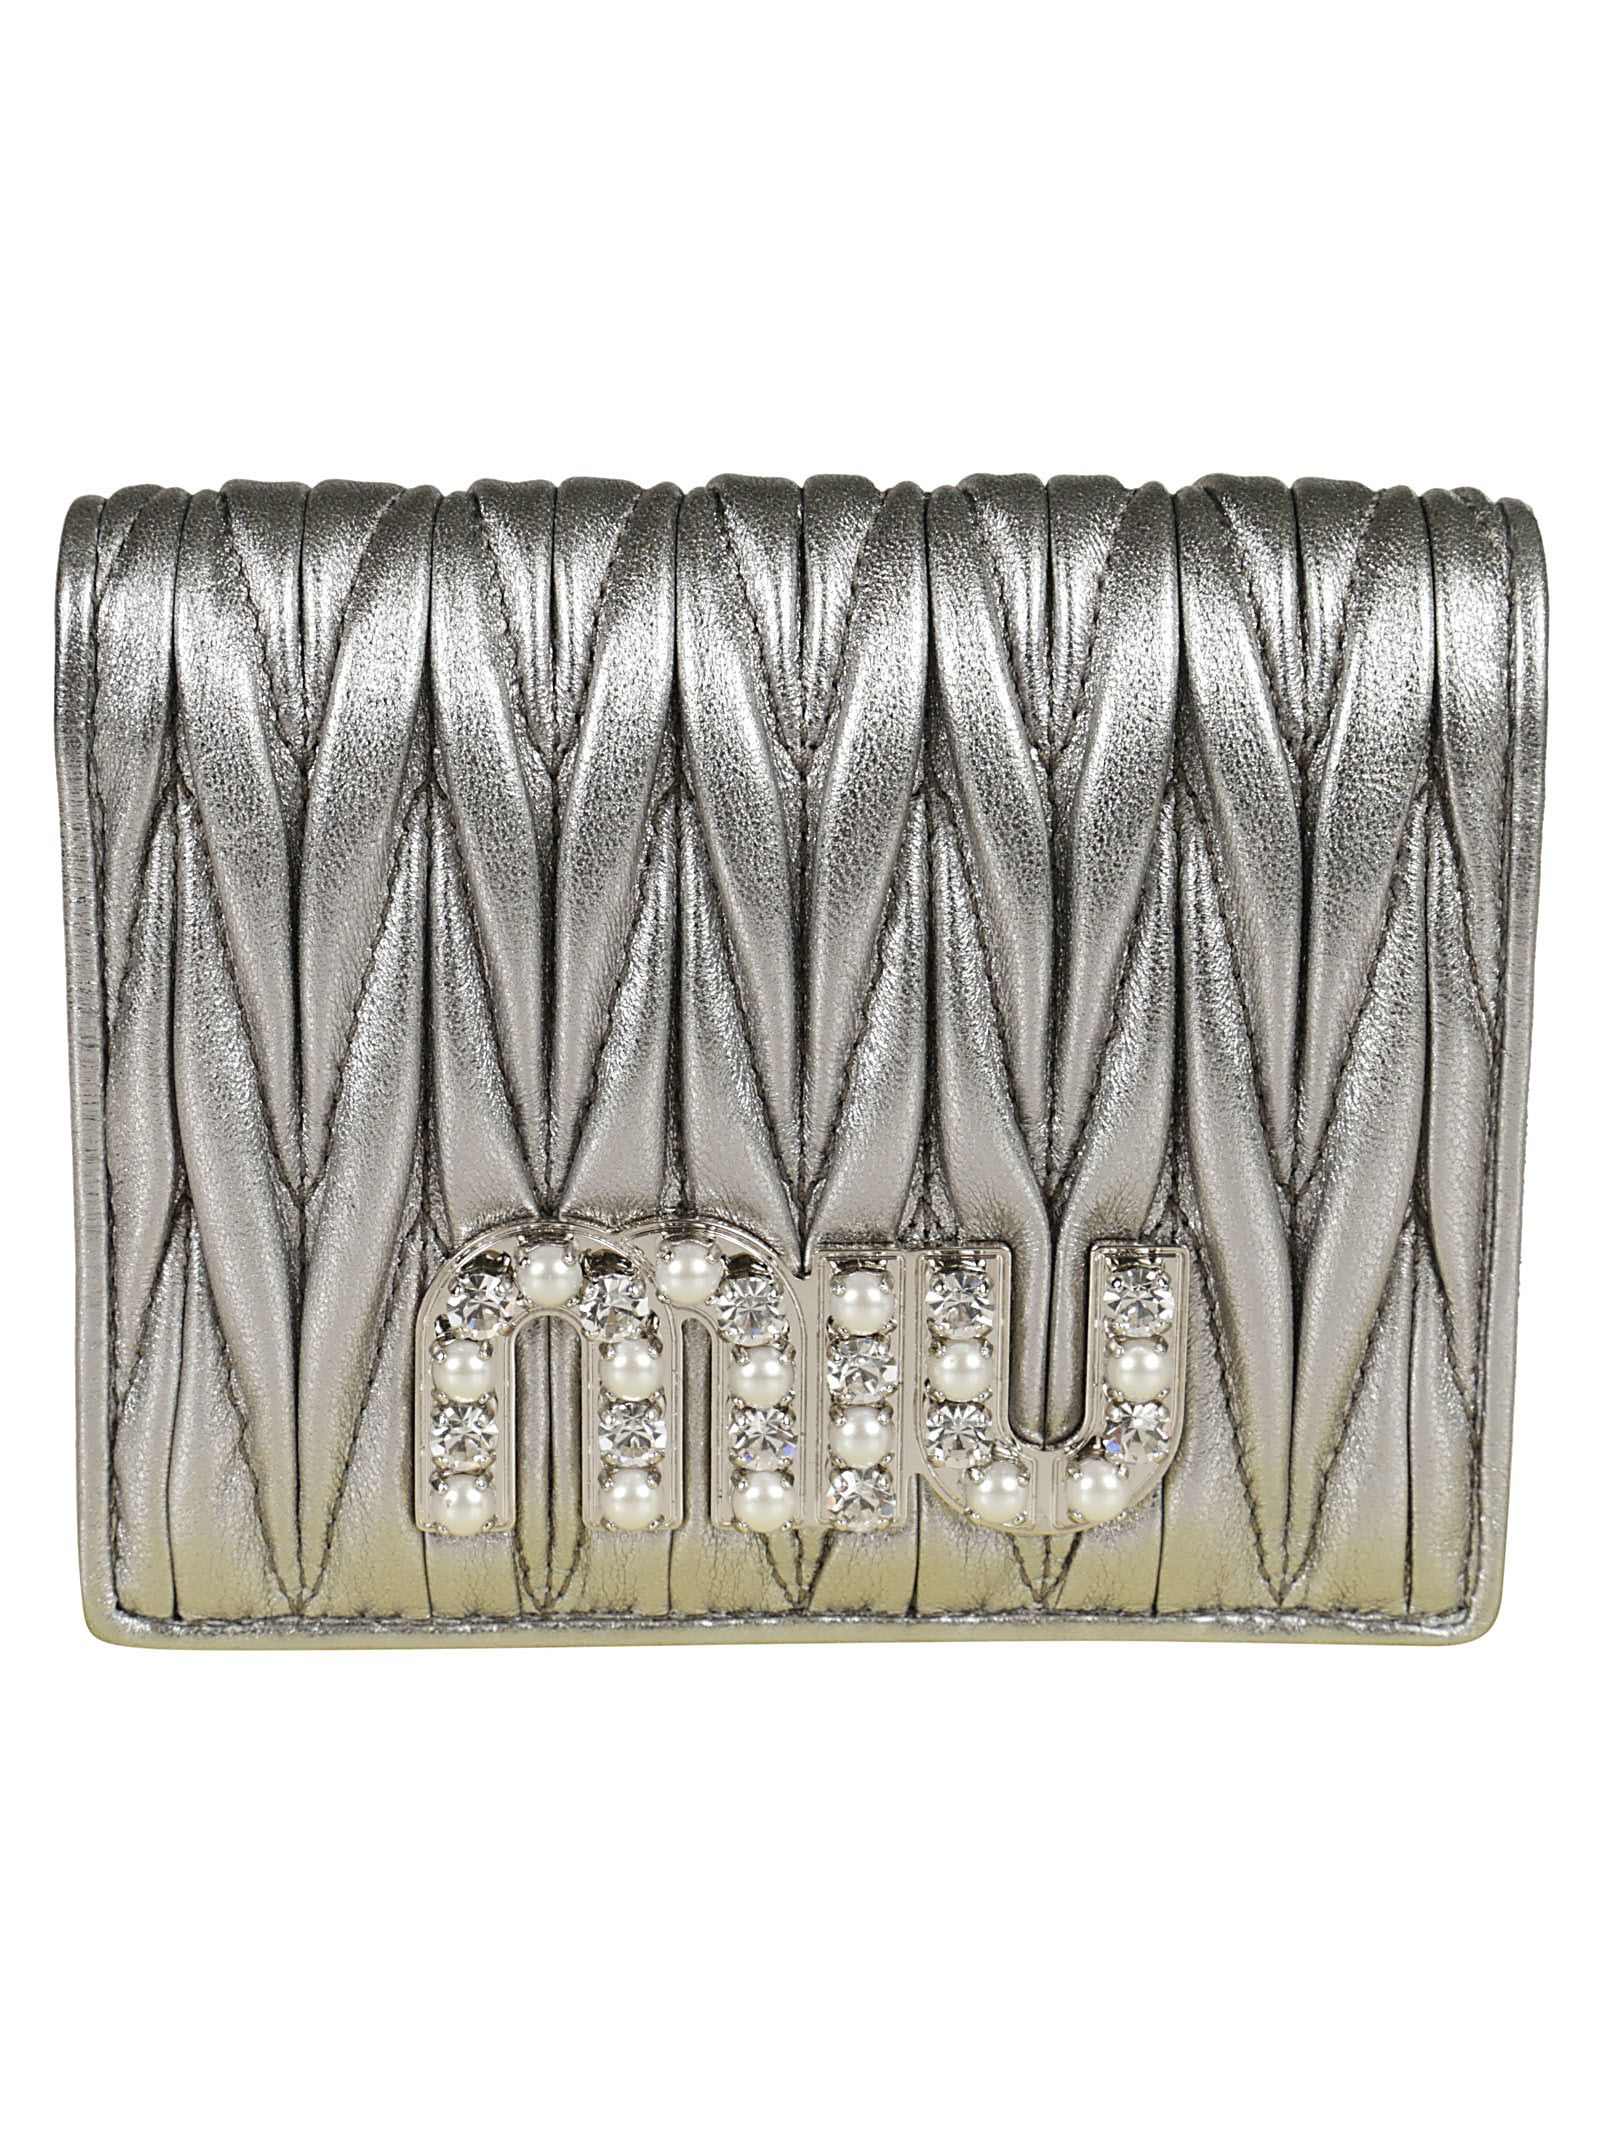 Wallet for Women On Sale, Cromo Grey, Leather, 2017, One size Miu Miu